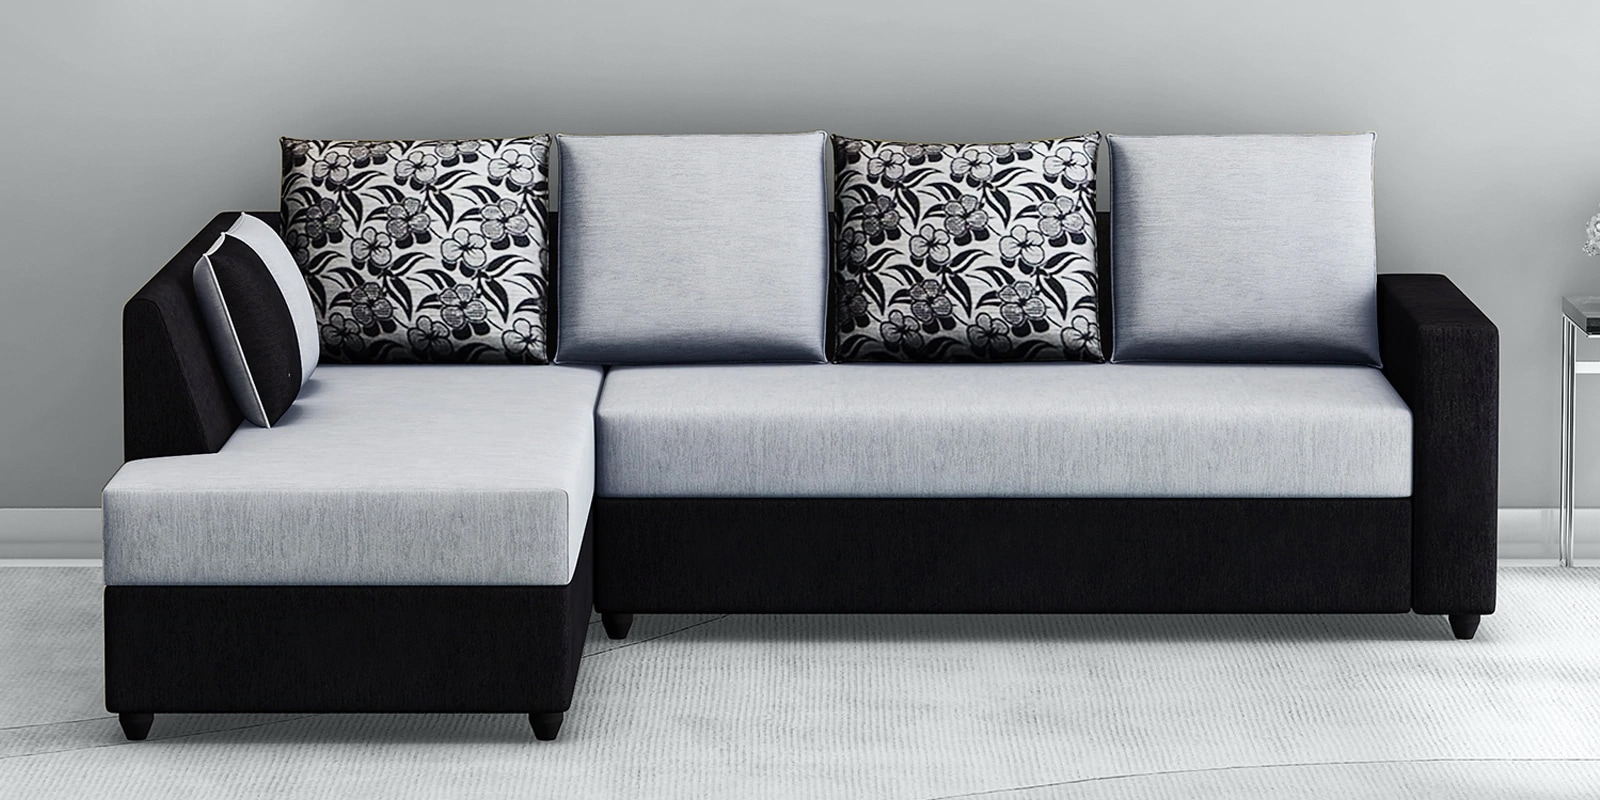 victoria rhs sectional sofa in grey black colour